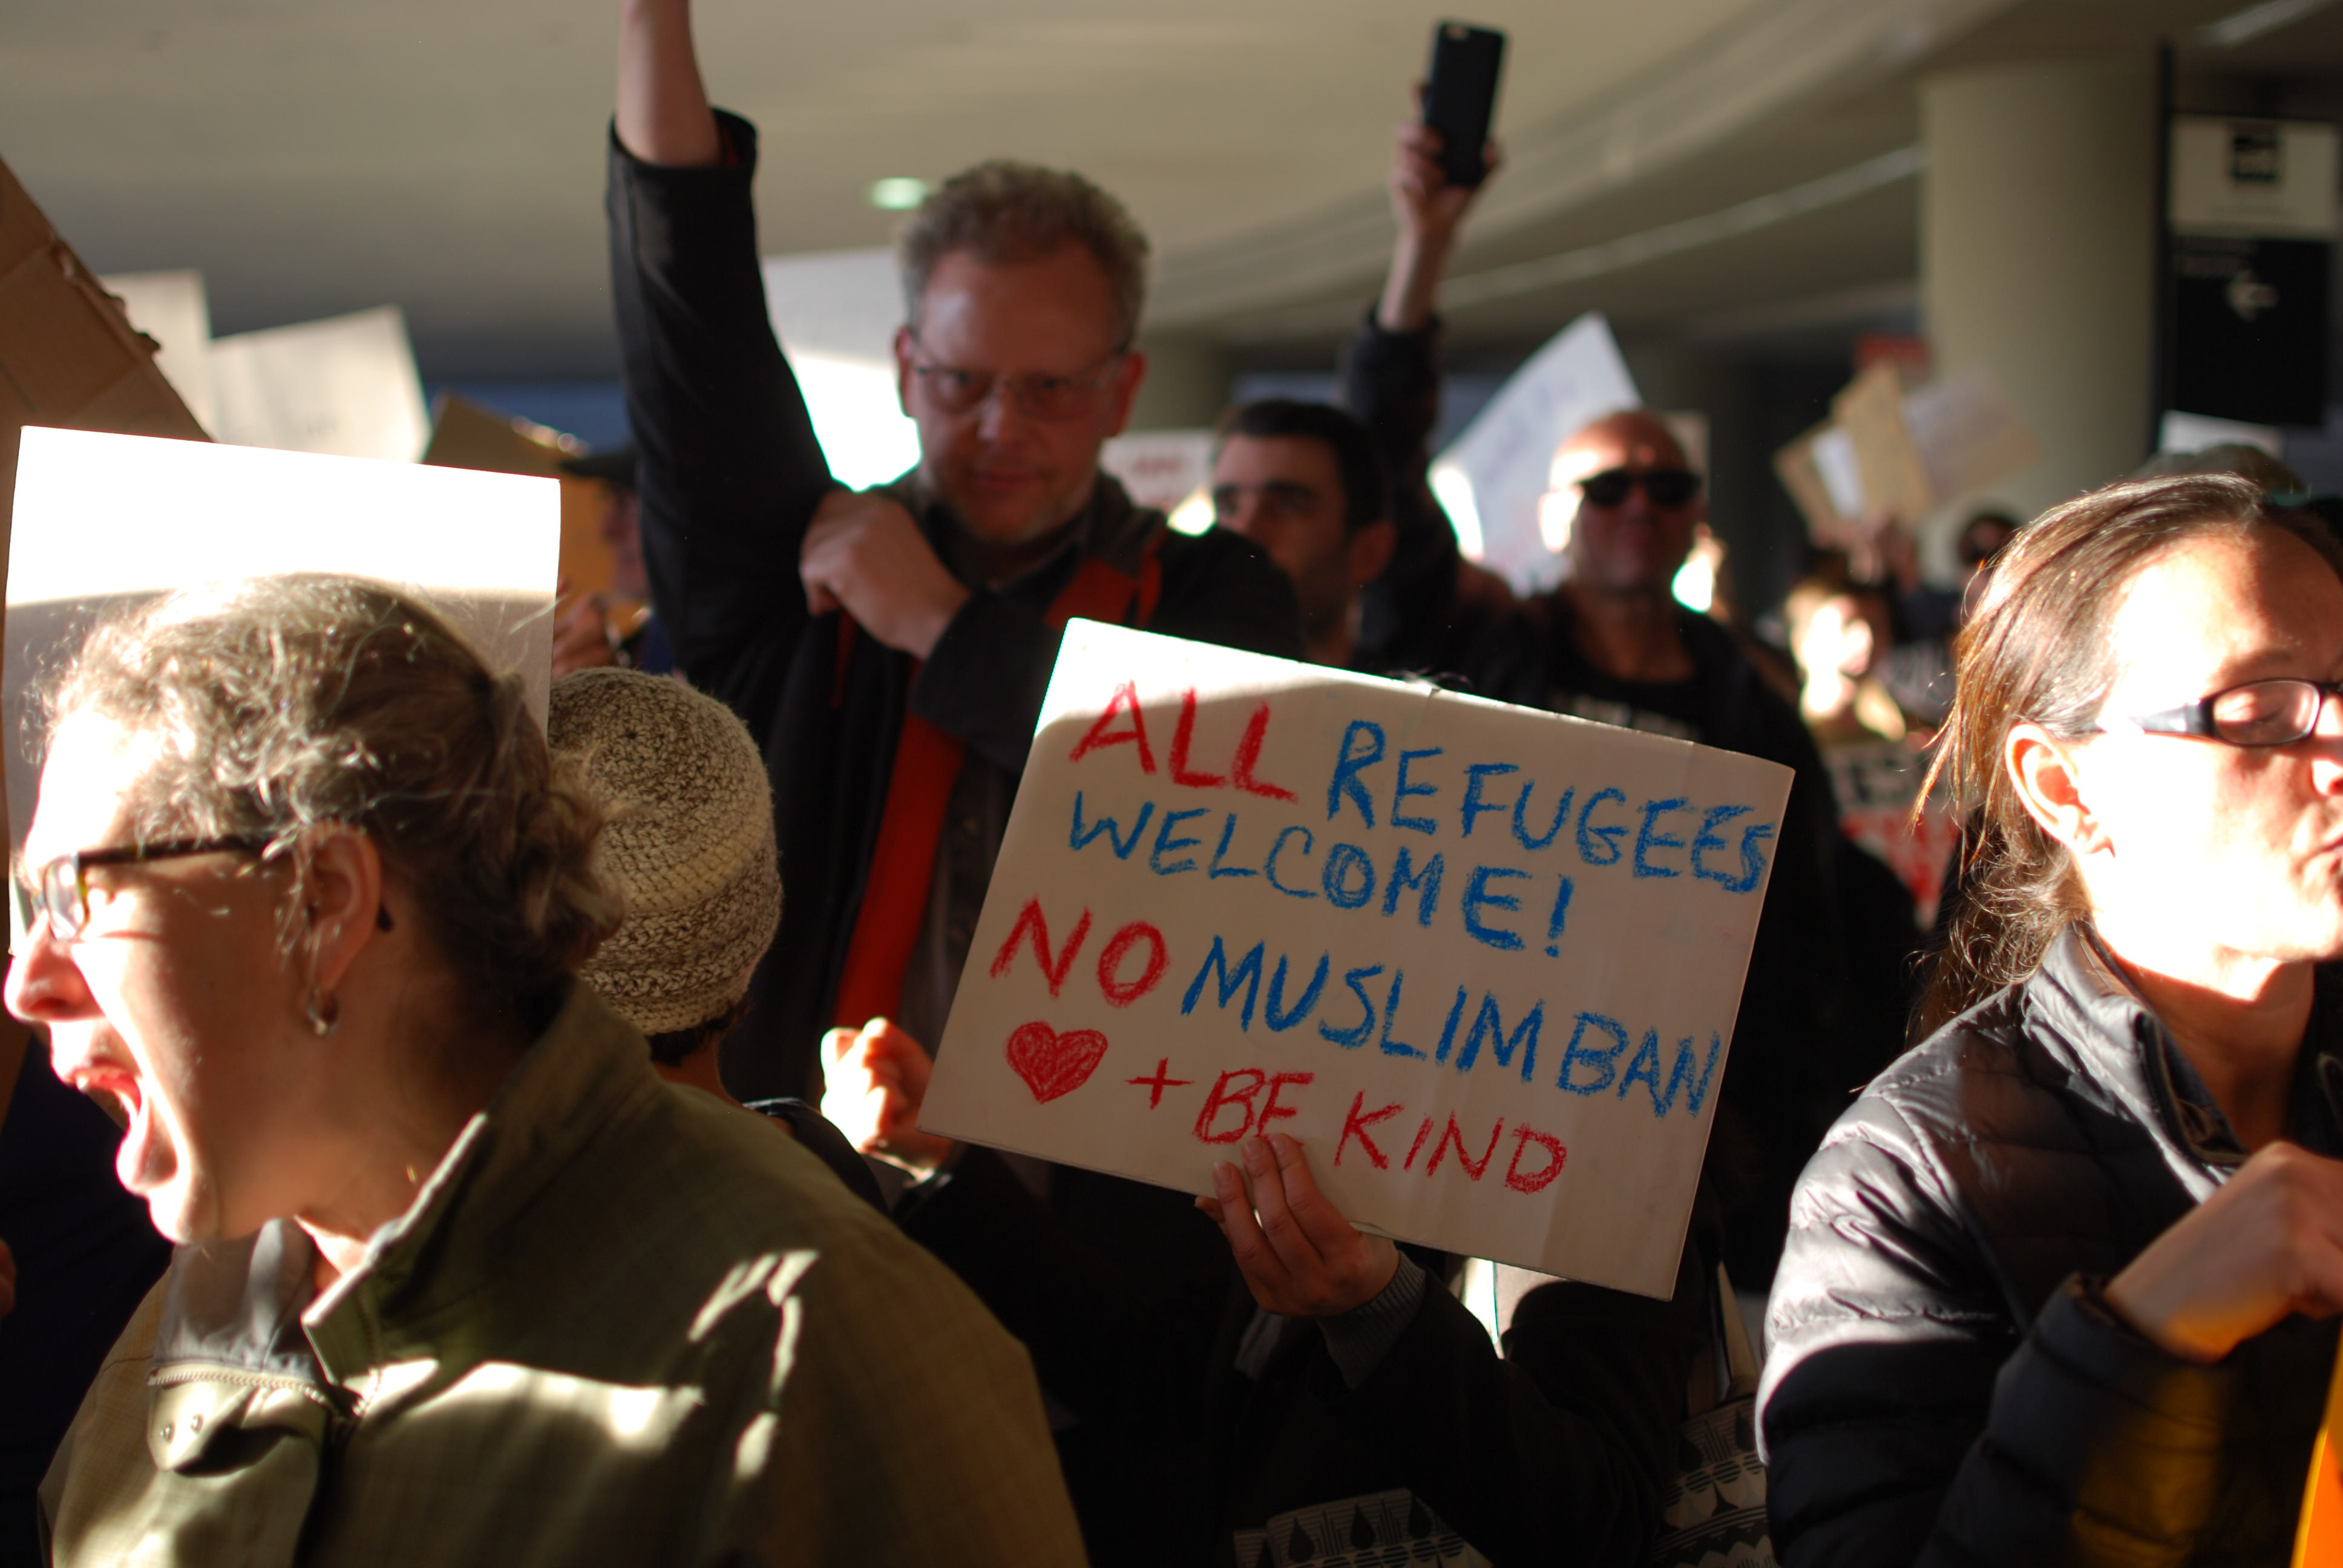 SFO-travel-ban-protest-love